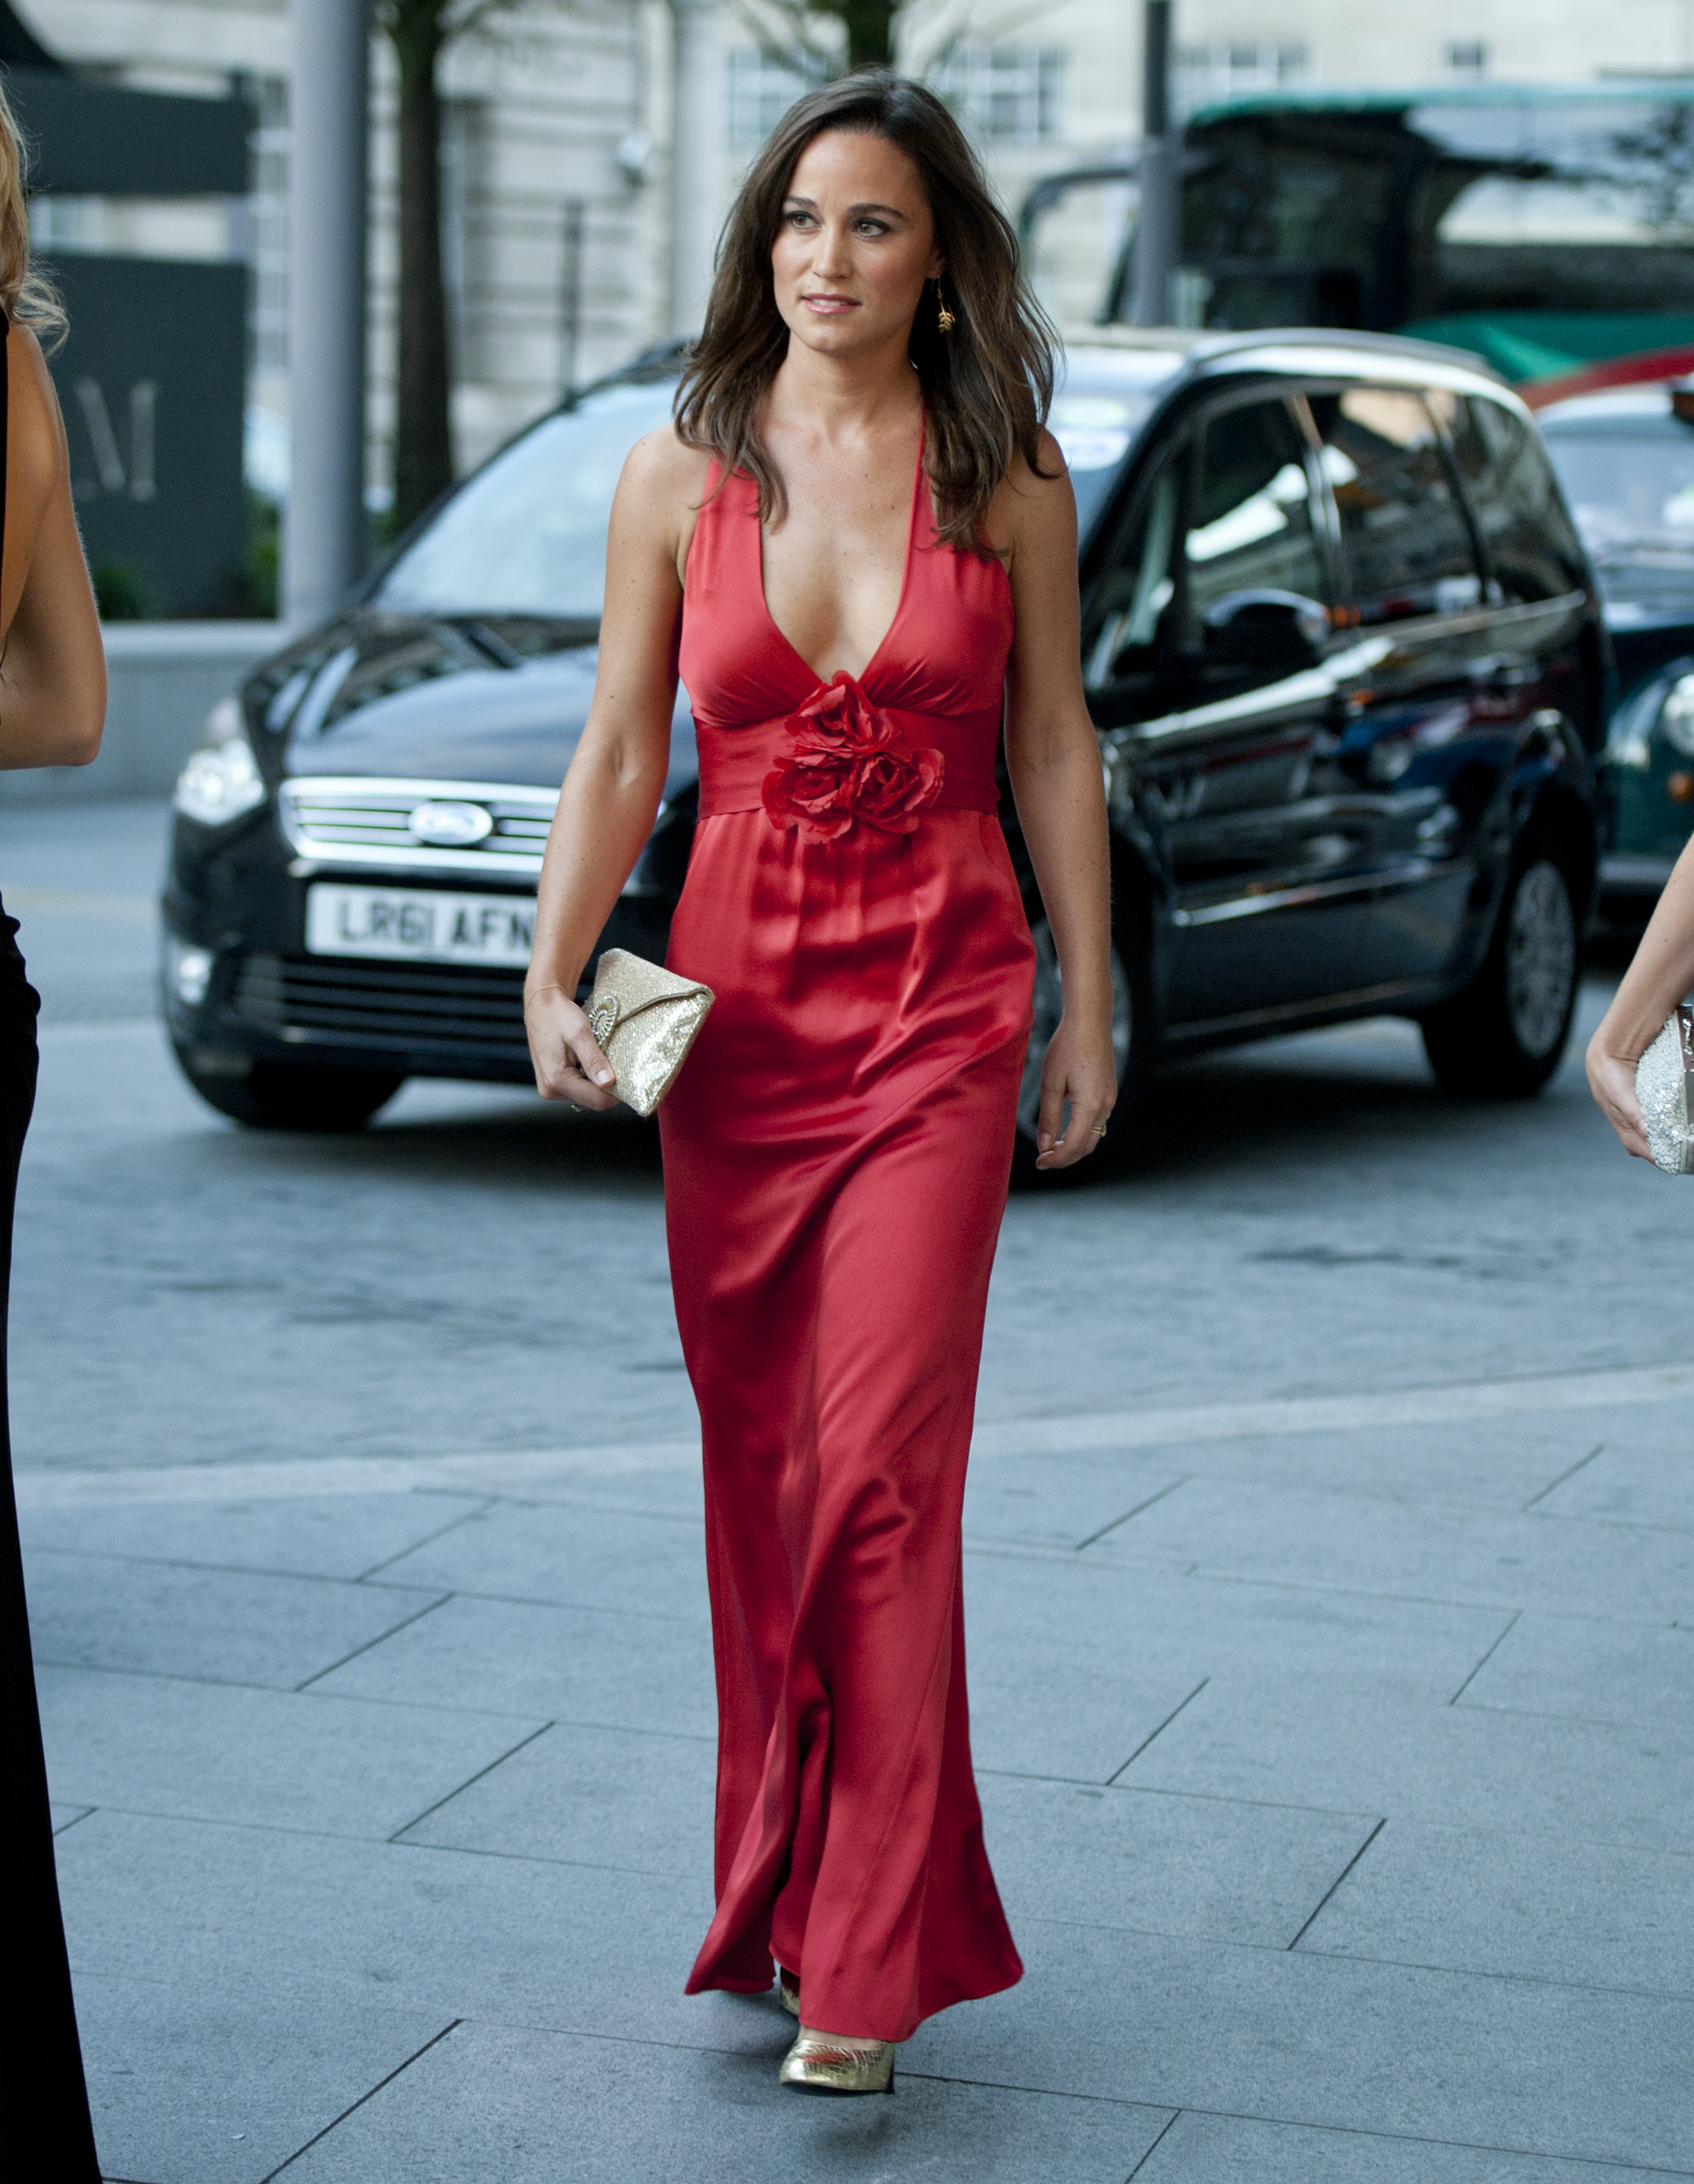 0b219fedbcb7d Pippa Middleton's complete style transformation - AOL Lifestyle